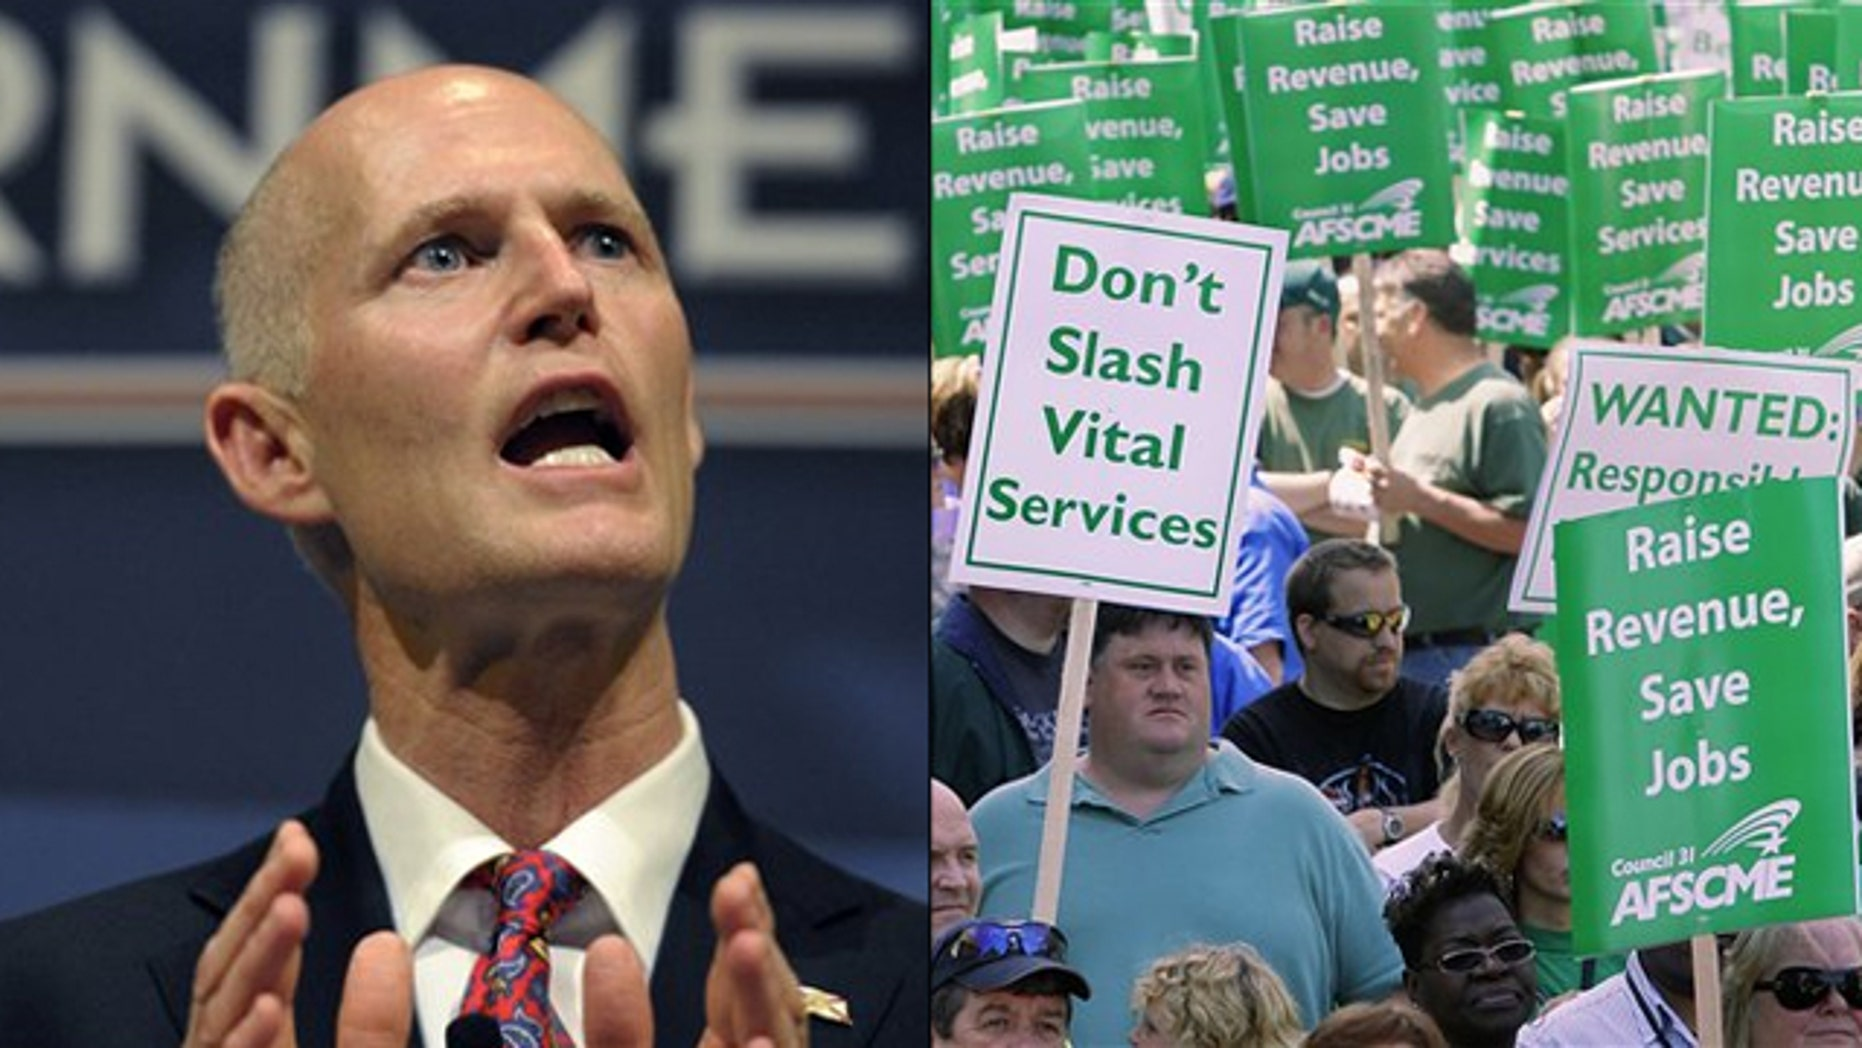 At left, Florida Gov. Rick Scott speaks at a Tea Party event in Eustis, Fla., Feb. 7. At right, Illinois state workers and union members rally in Springfield, Ill., to protest budget cuts in April 2010.